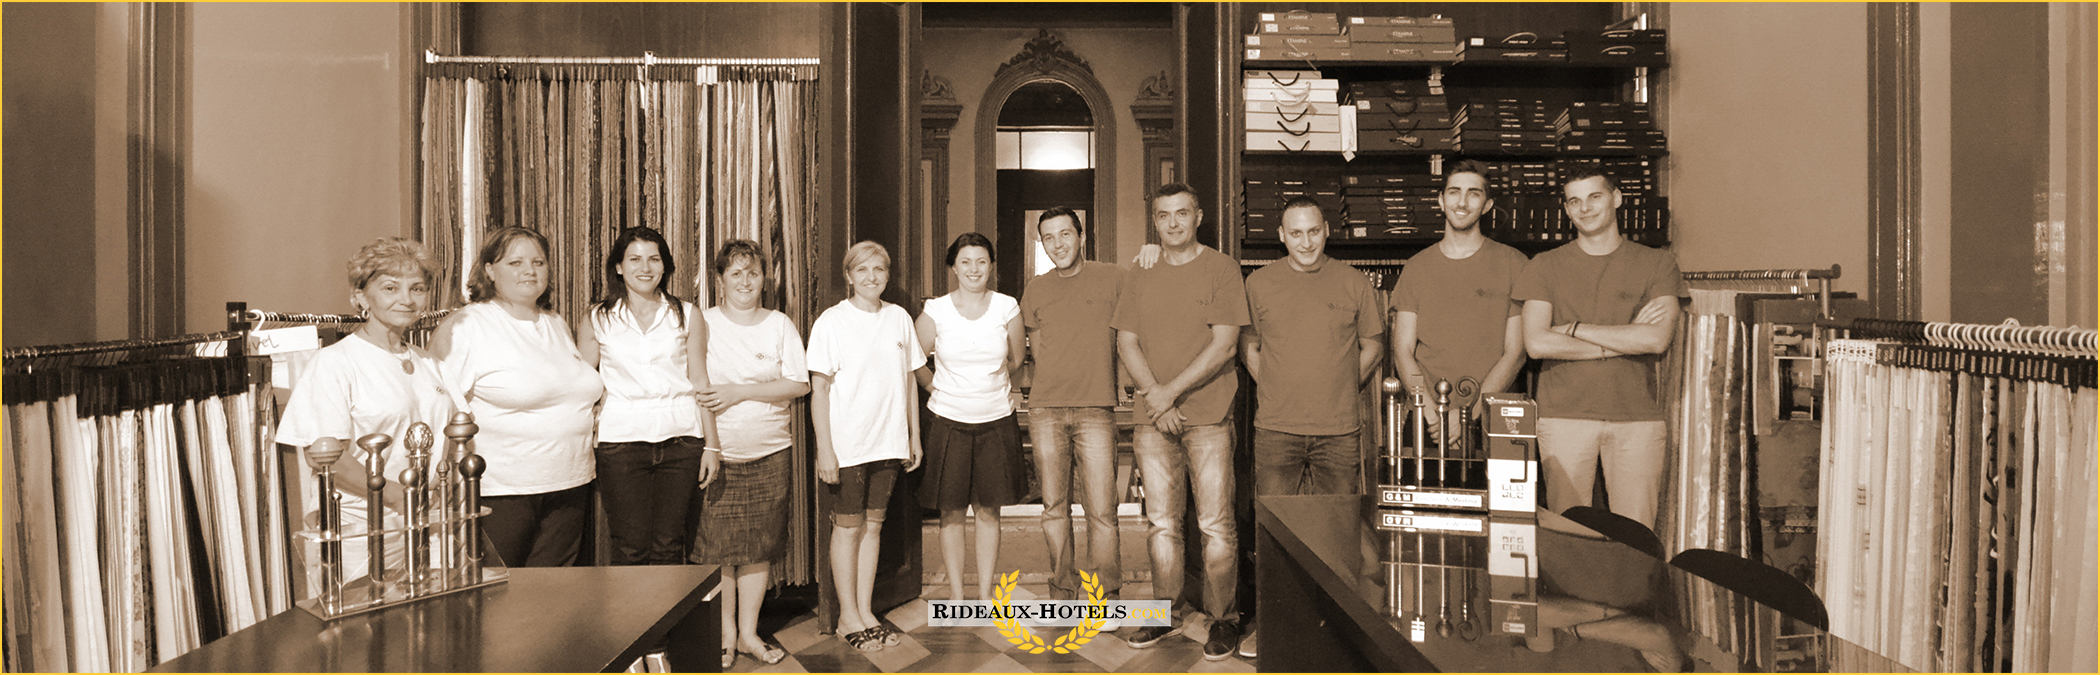 04_Equipe_Rideaux_Hotels